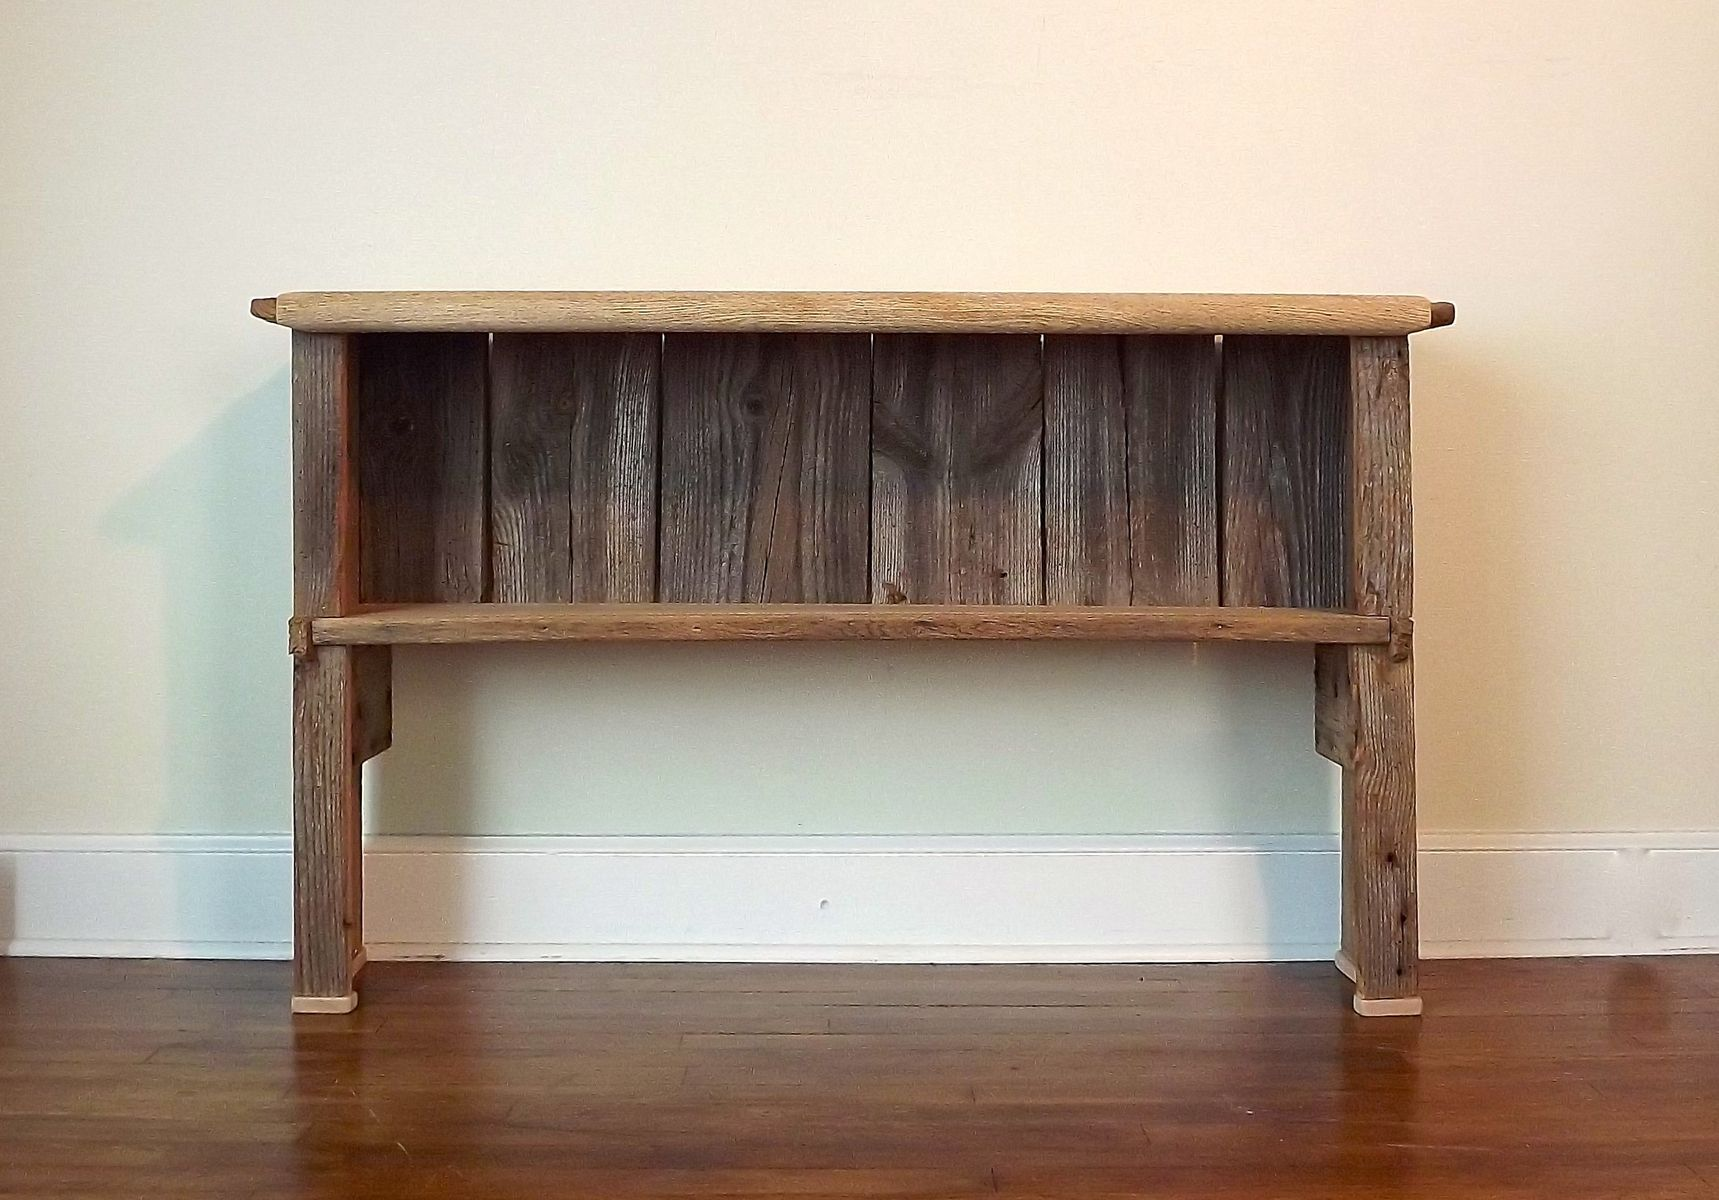 Fullsize Of Rustic Console Table